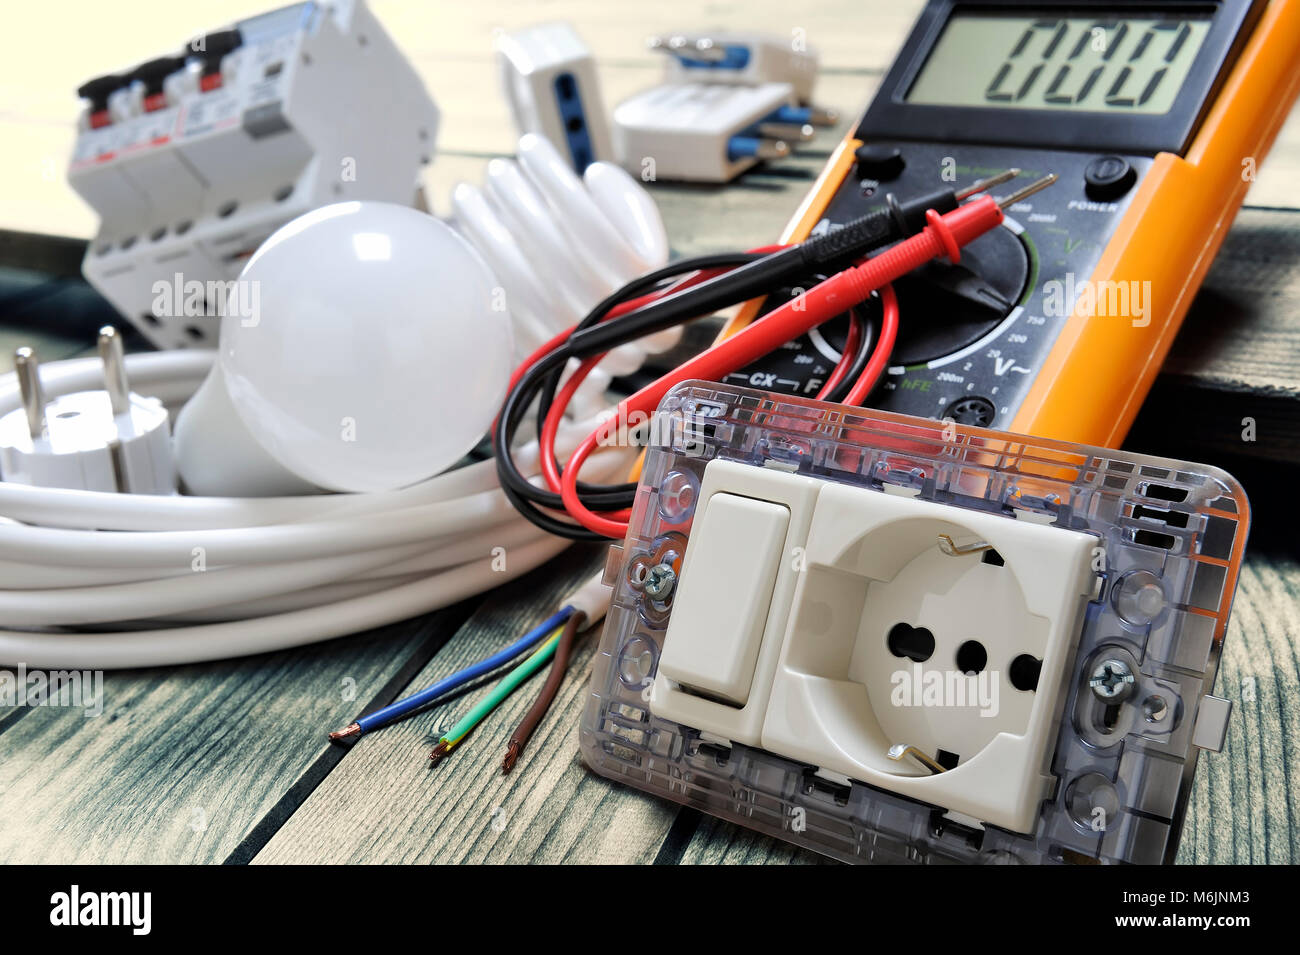 Close-up of electrical socket and switch and other components for ...